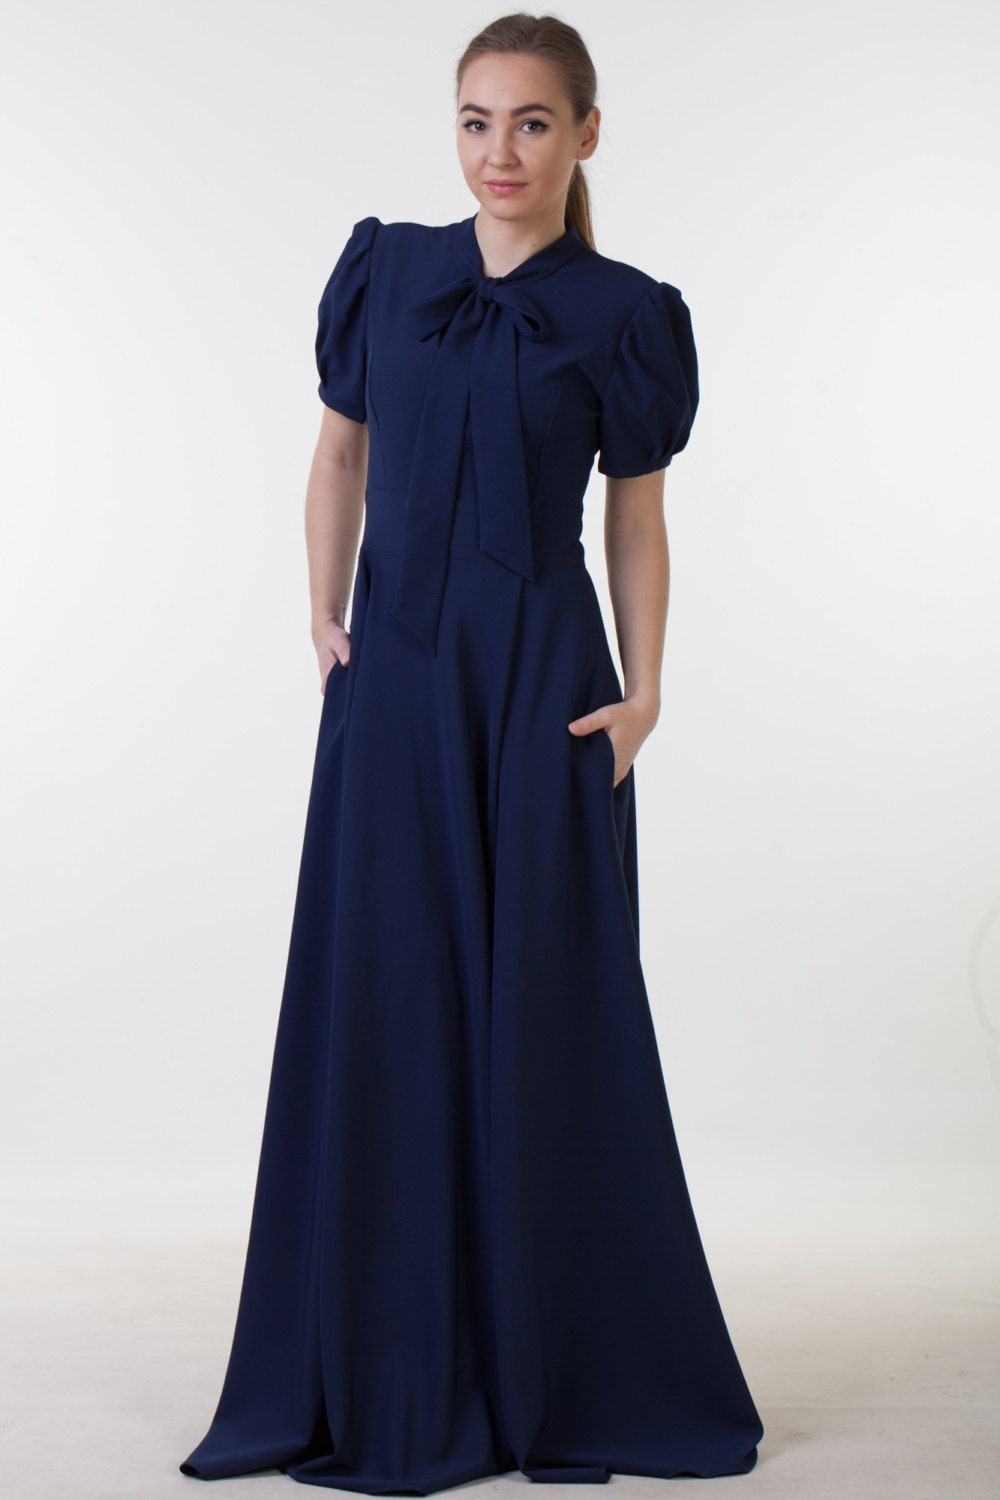 Clearance one size sale long navy blue dress with pockets description navy blue dress with pockets ombrellifo Image collections